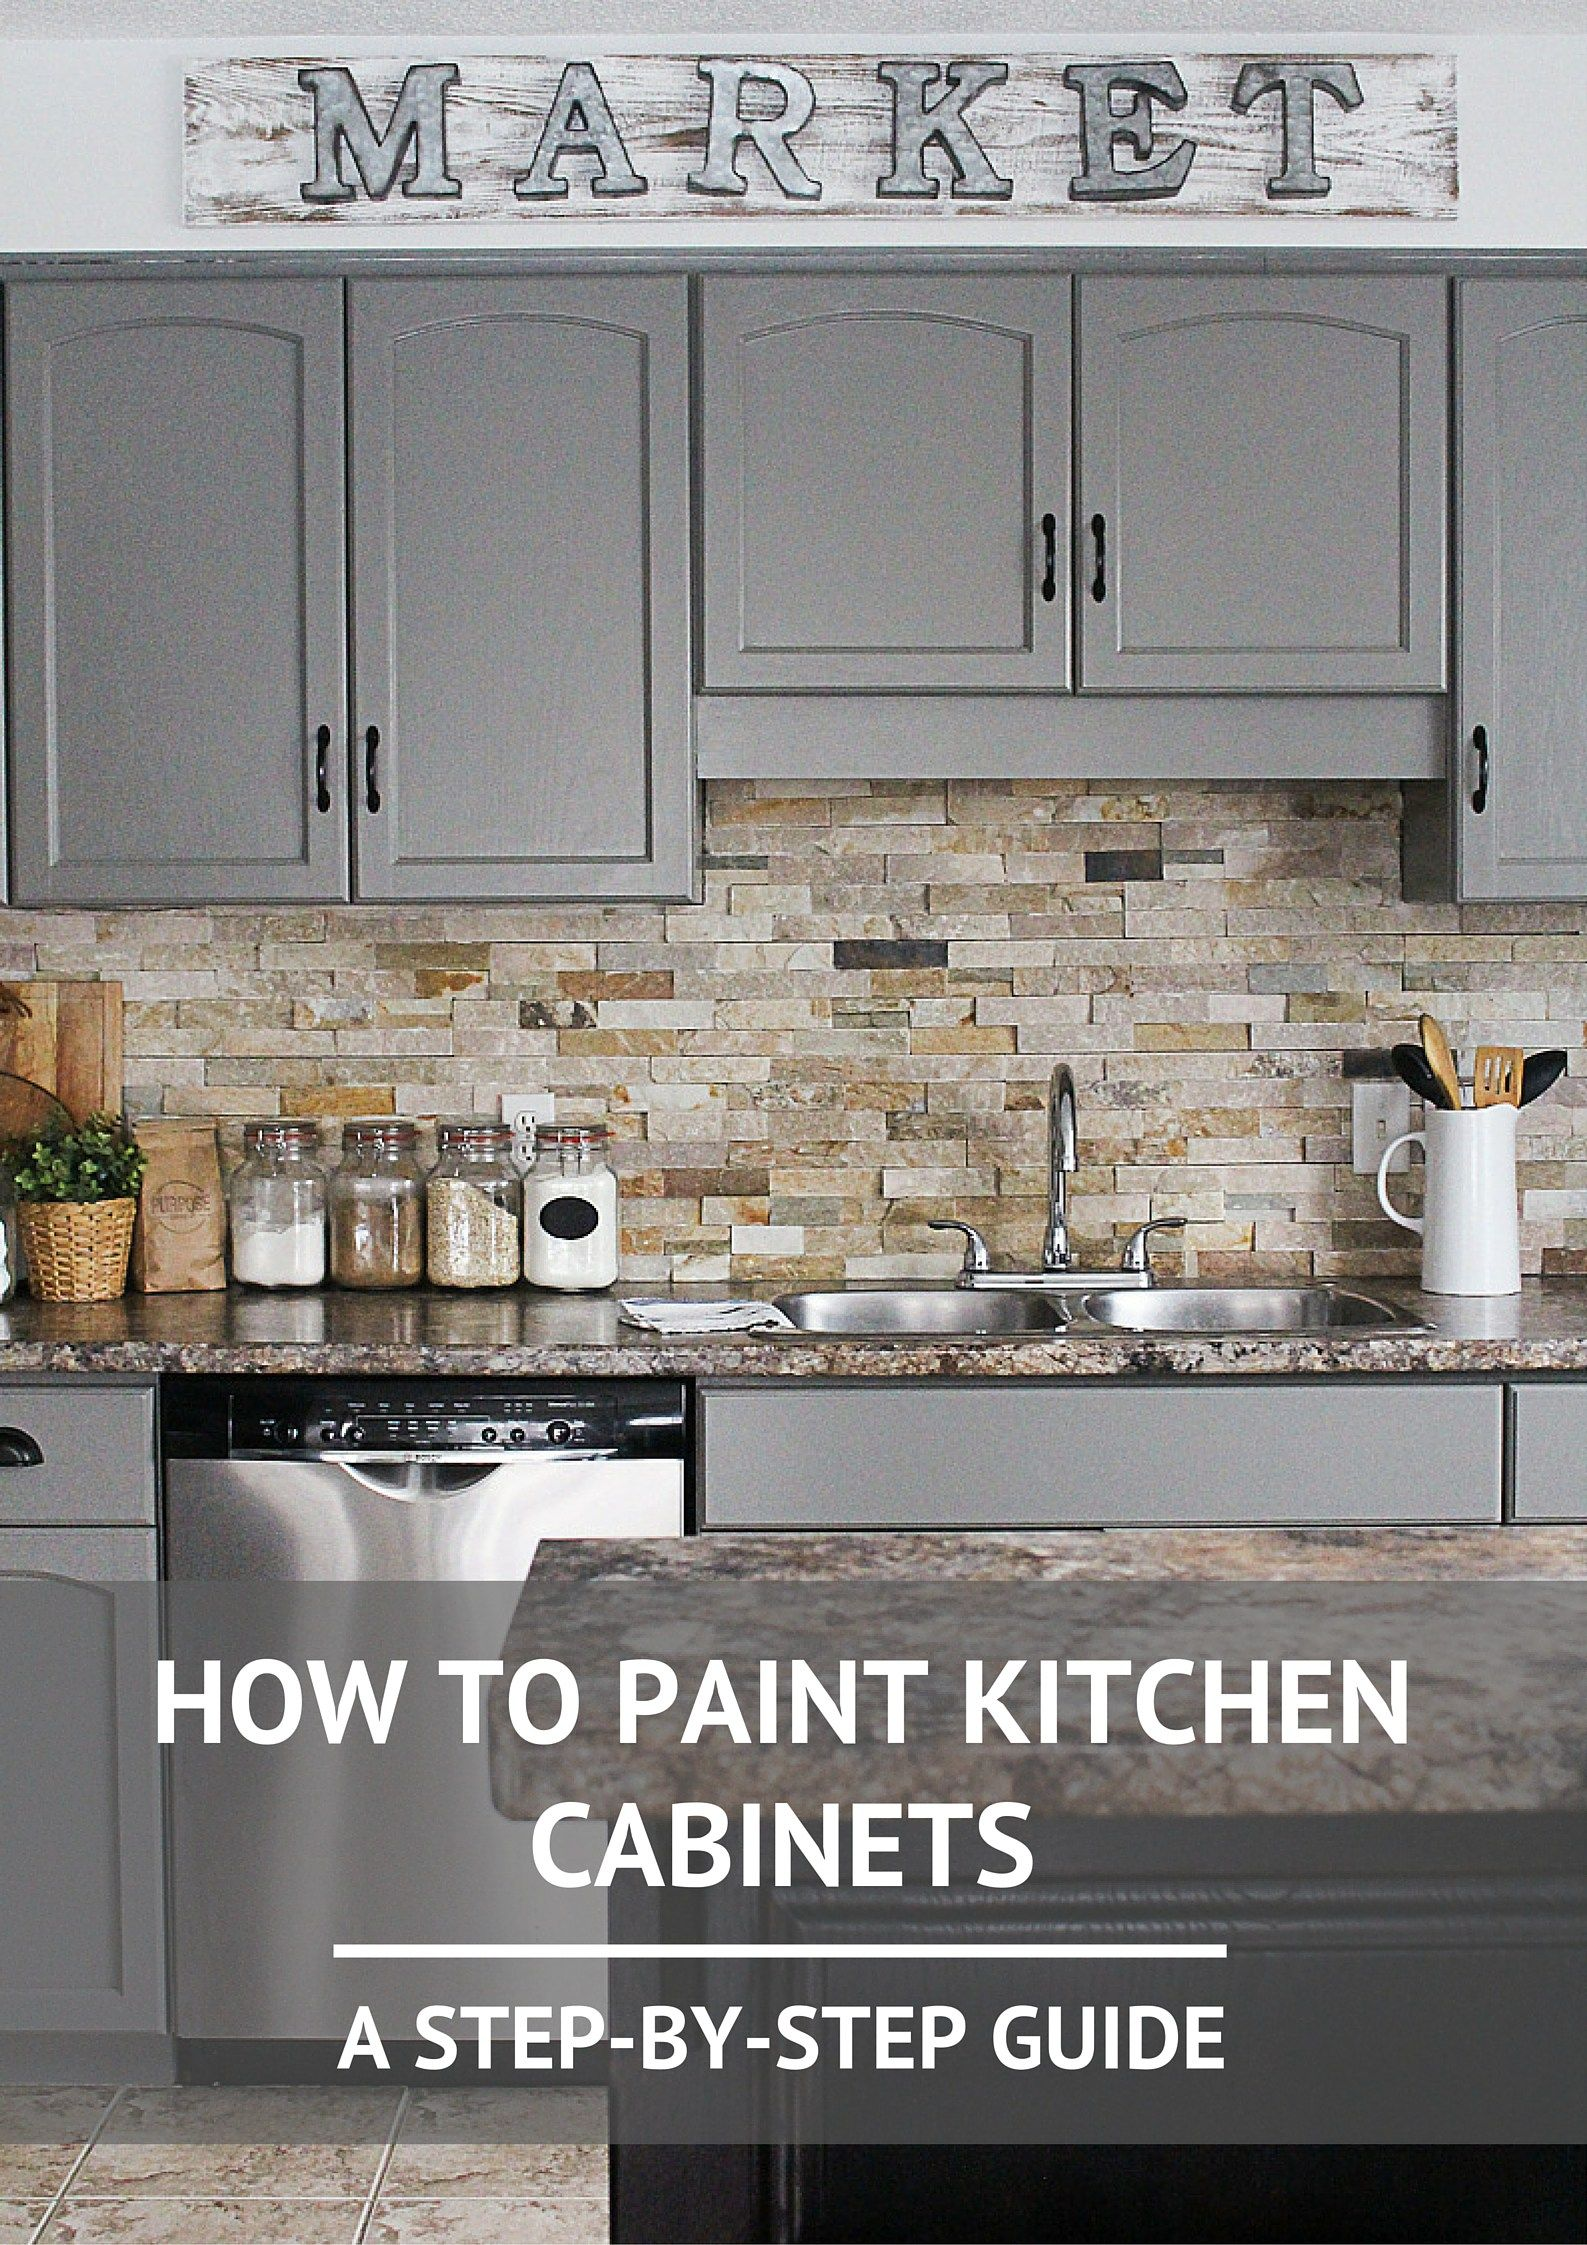 How To Paint Kitchen Cabinets With Images